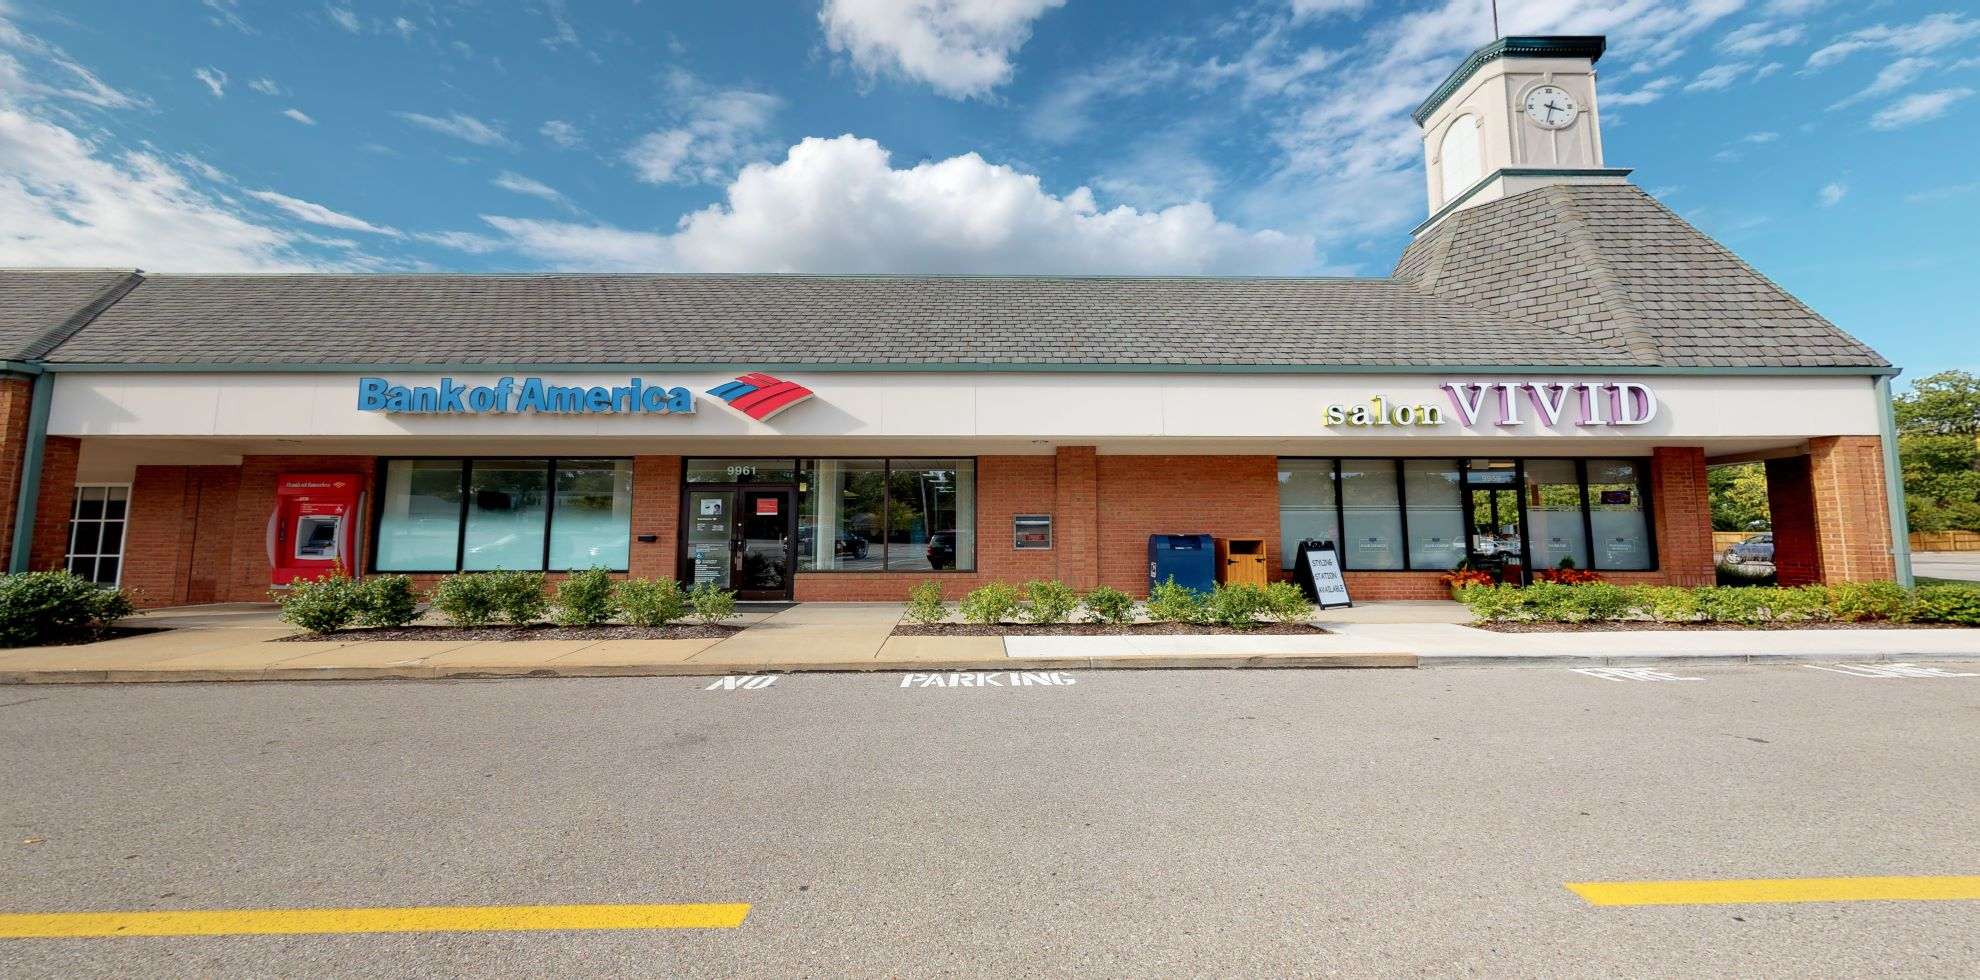 Bank of America financial center with drive-thru ATM   9961 Manchester Rd, Saint Louis, MO 63122